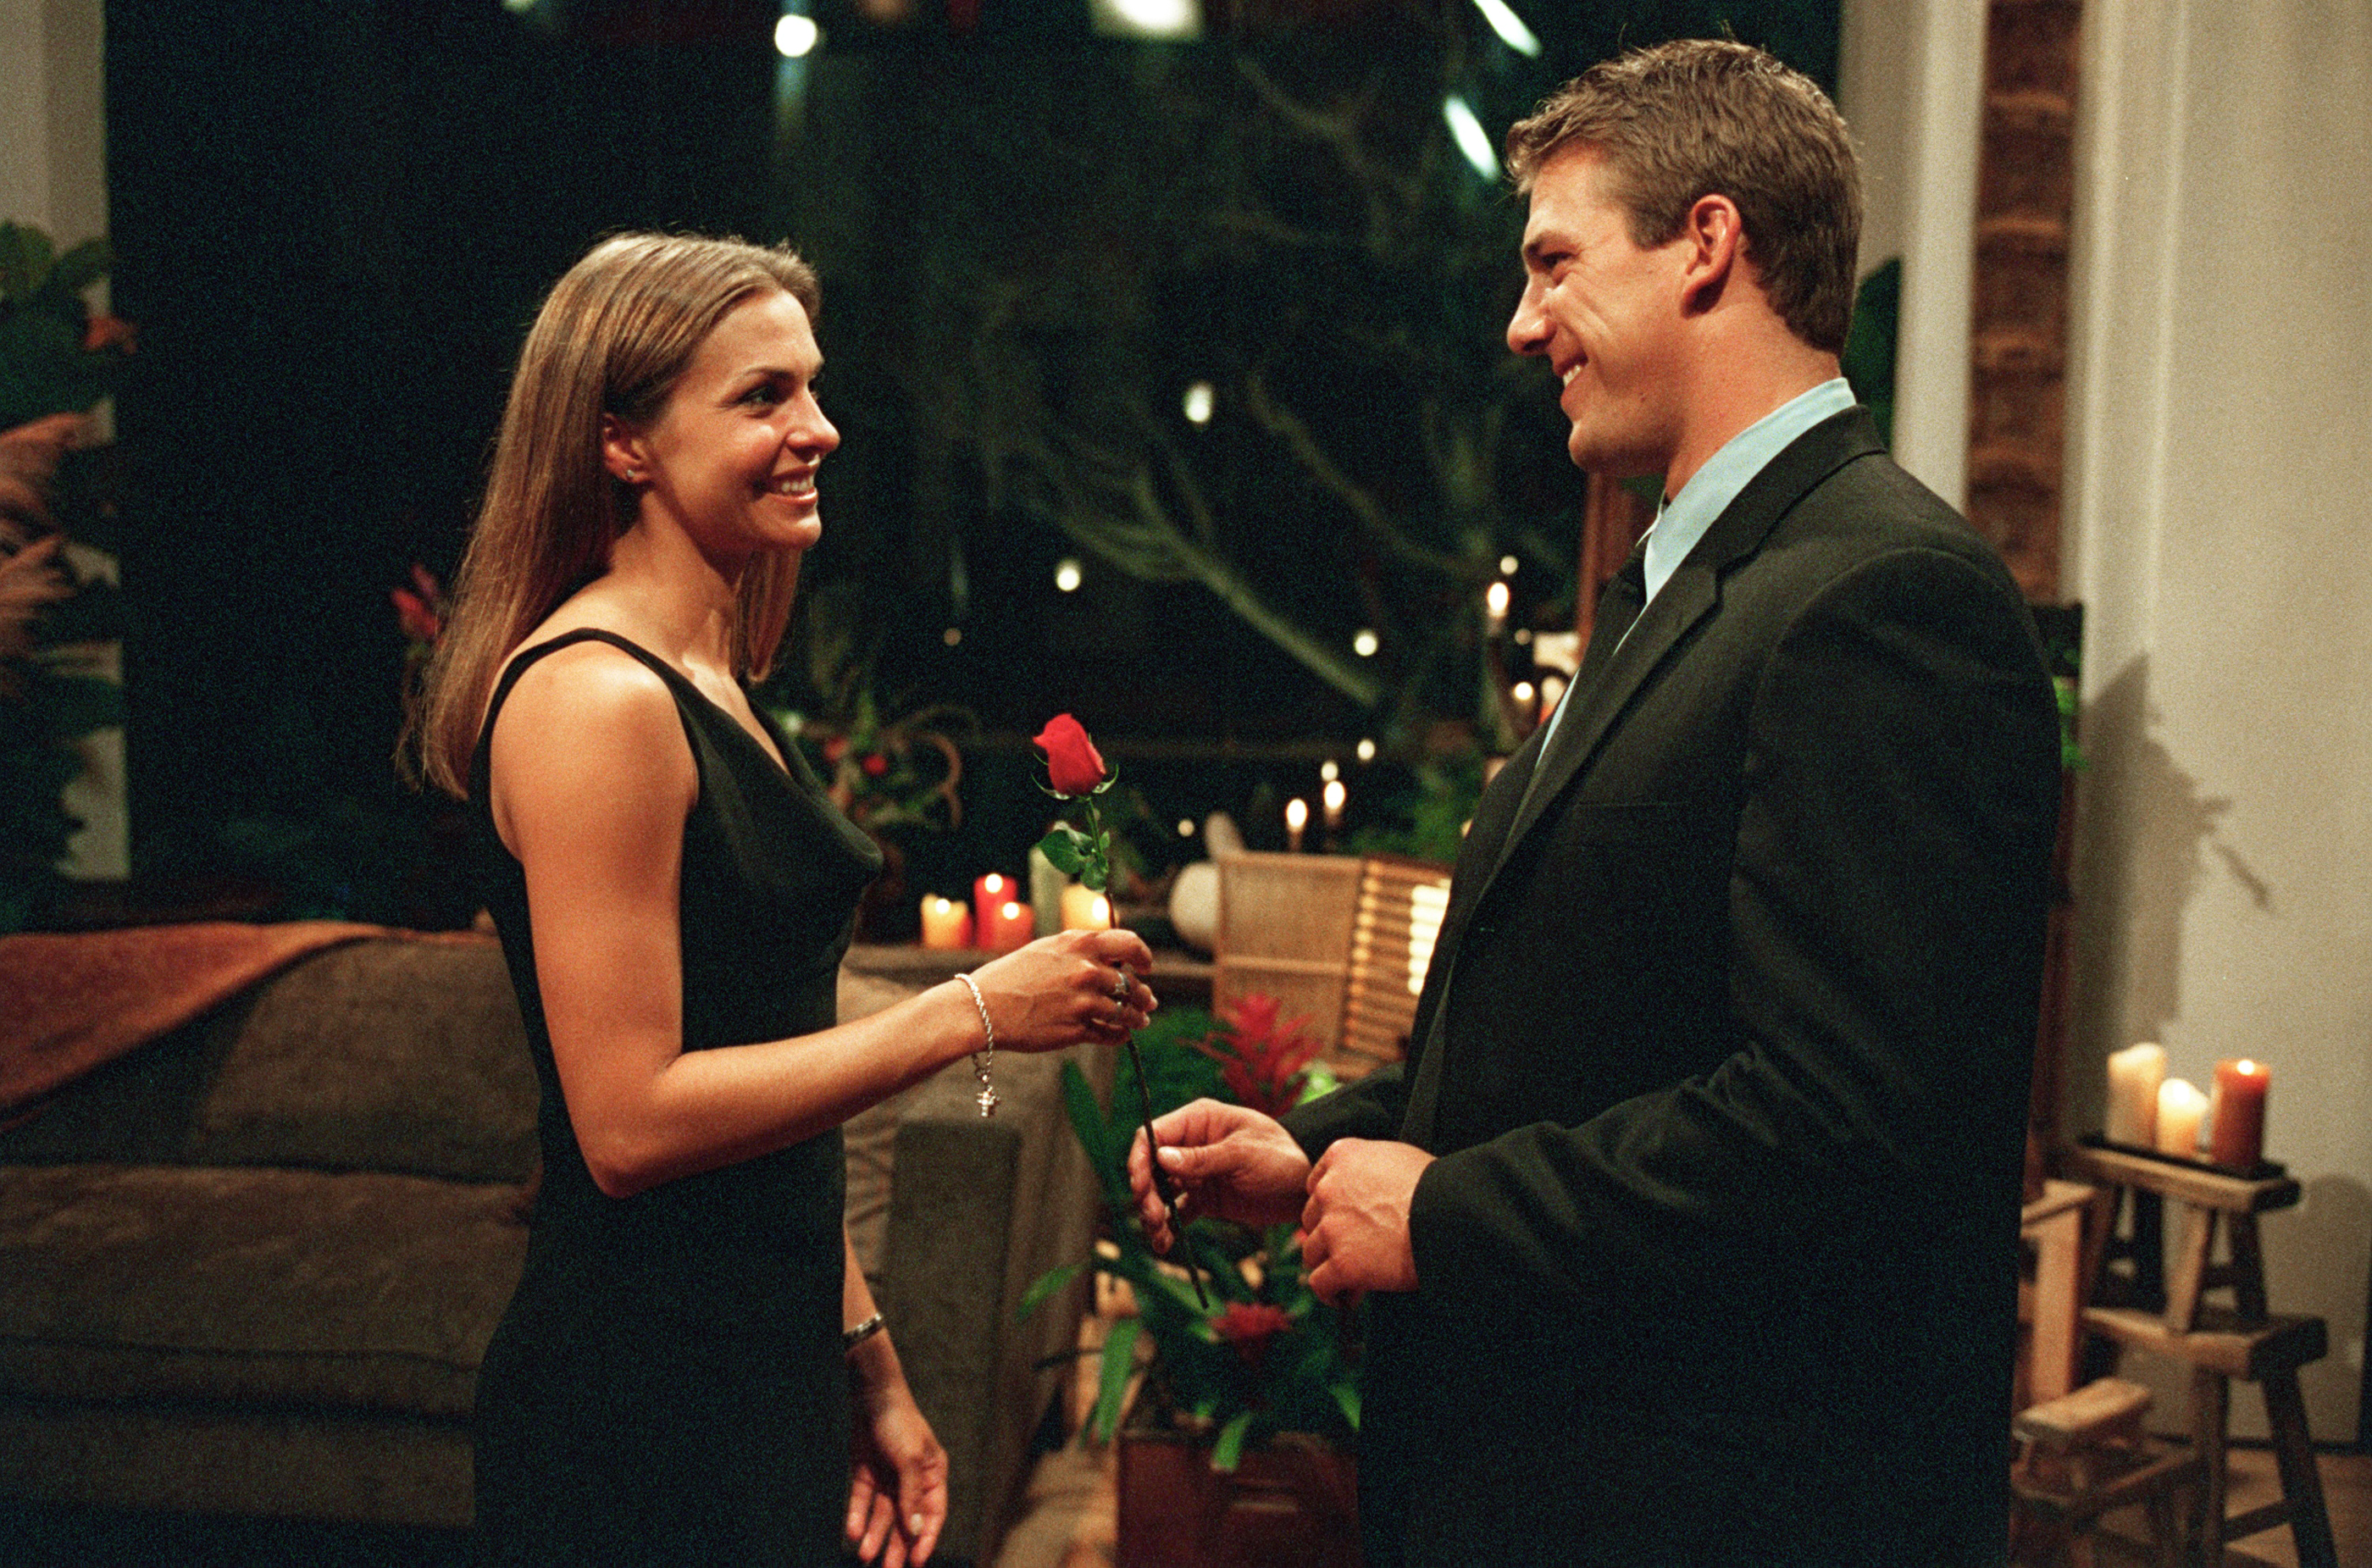 """THE BACHELOR -- """"Episode No. 206"""" - Relationships are intensifying, as Aaron and Brooke take a dreamy trip to the island of Kauai, then Aaron and Gwen tour romantic San Francisco, and, finally, Aaron and Helene enjoy a cozy time in Aspen, on """"The Bachelor,"""" WEDNESDAY, NOVEMBER 6 (9:00-10:00 p.m., ET), on the ABC Television Network. (Photo by Craig Sjodin/ABC via Getty Images)"""